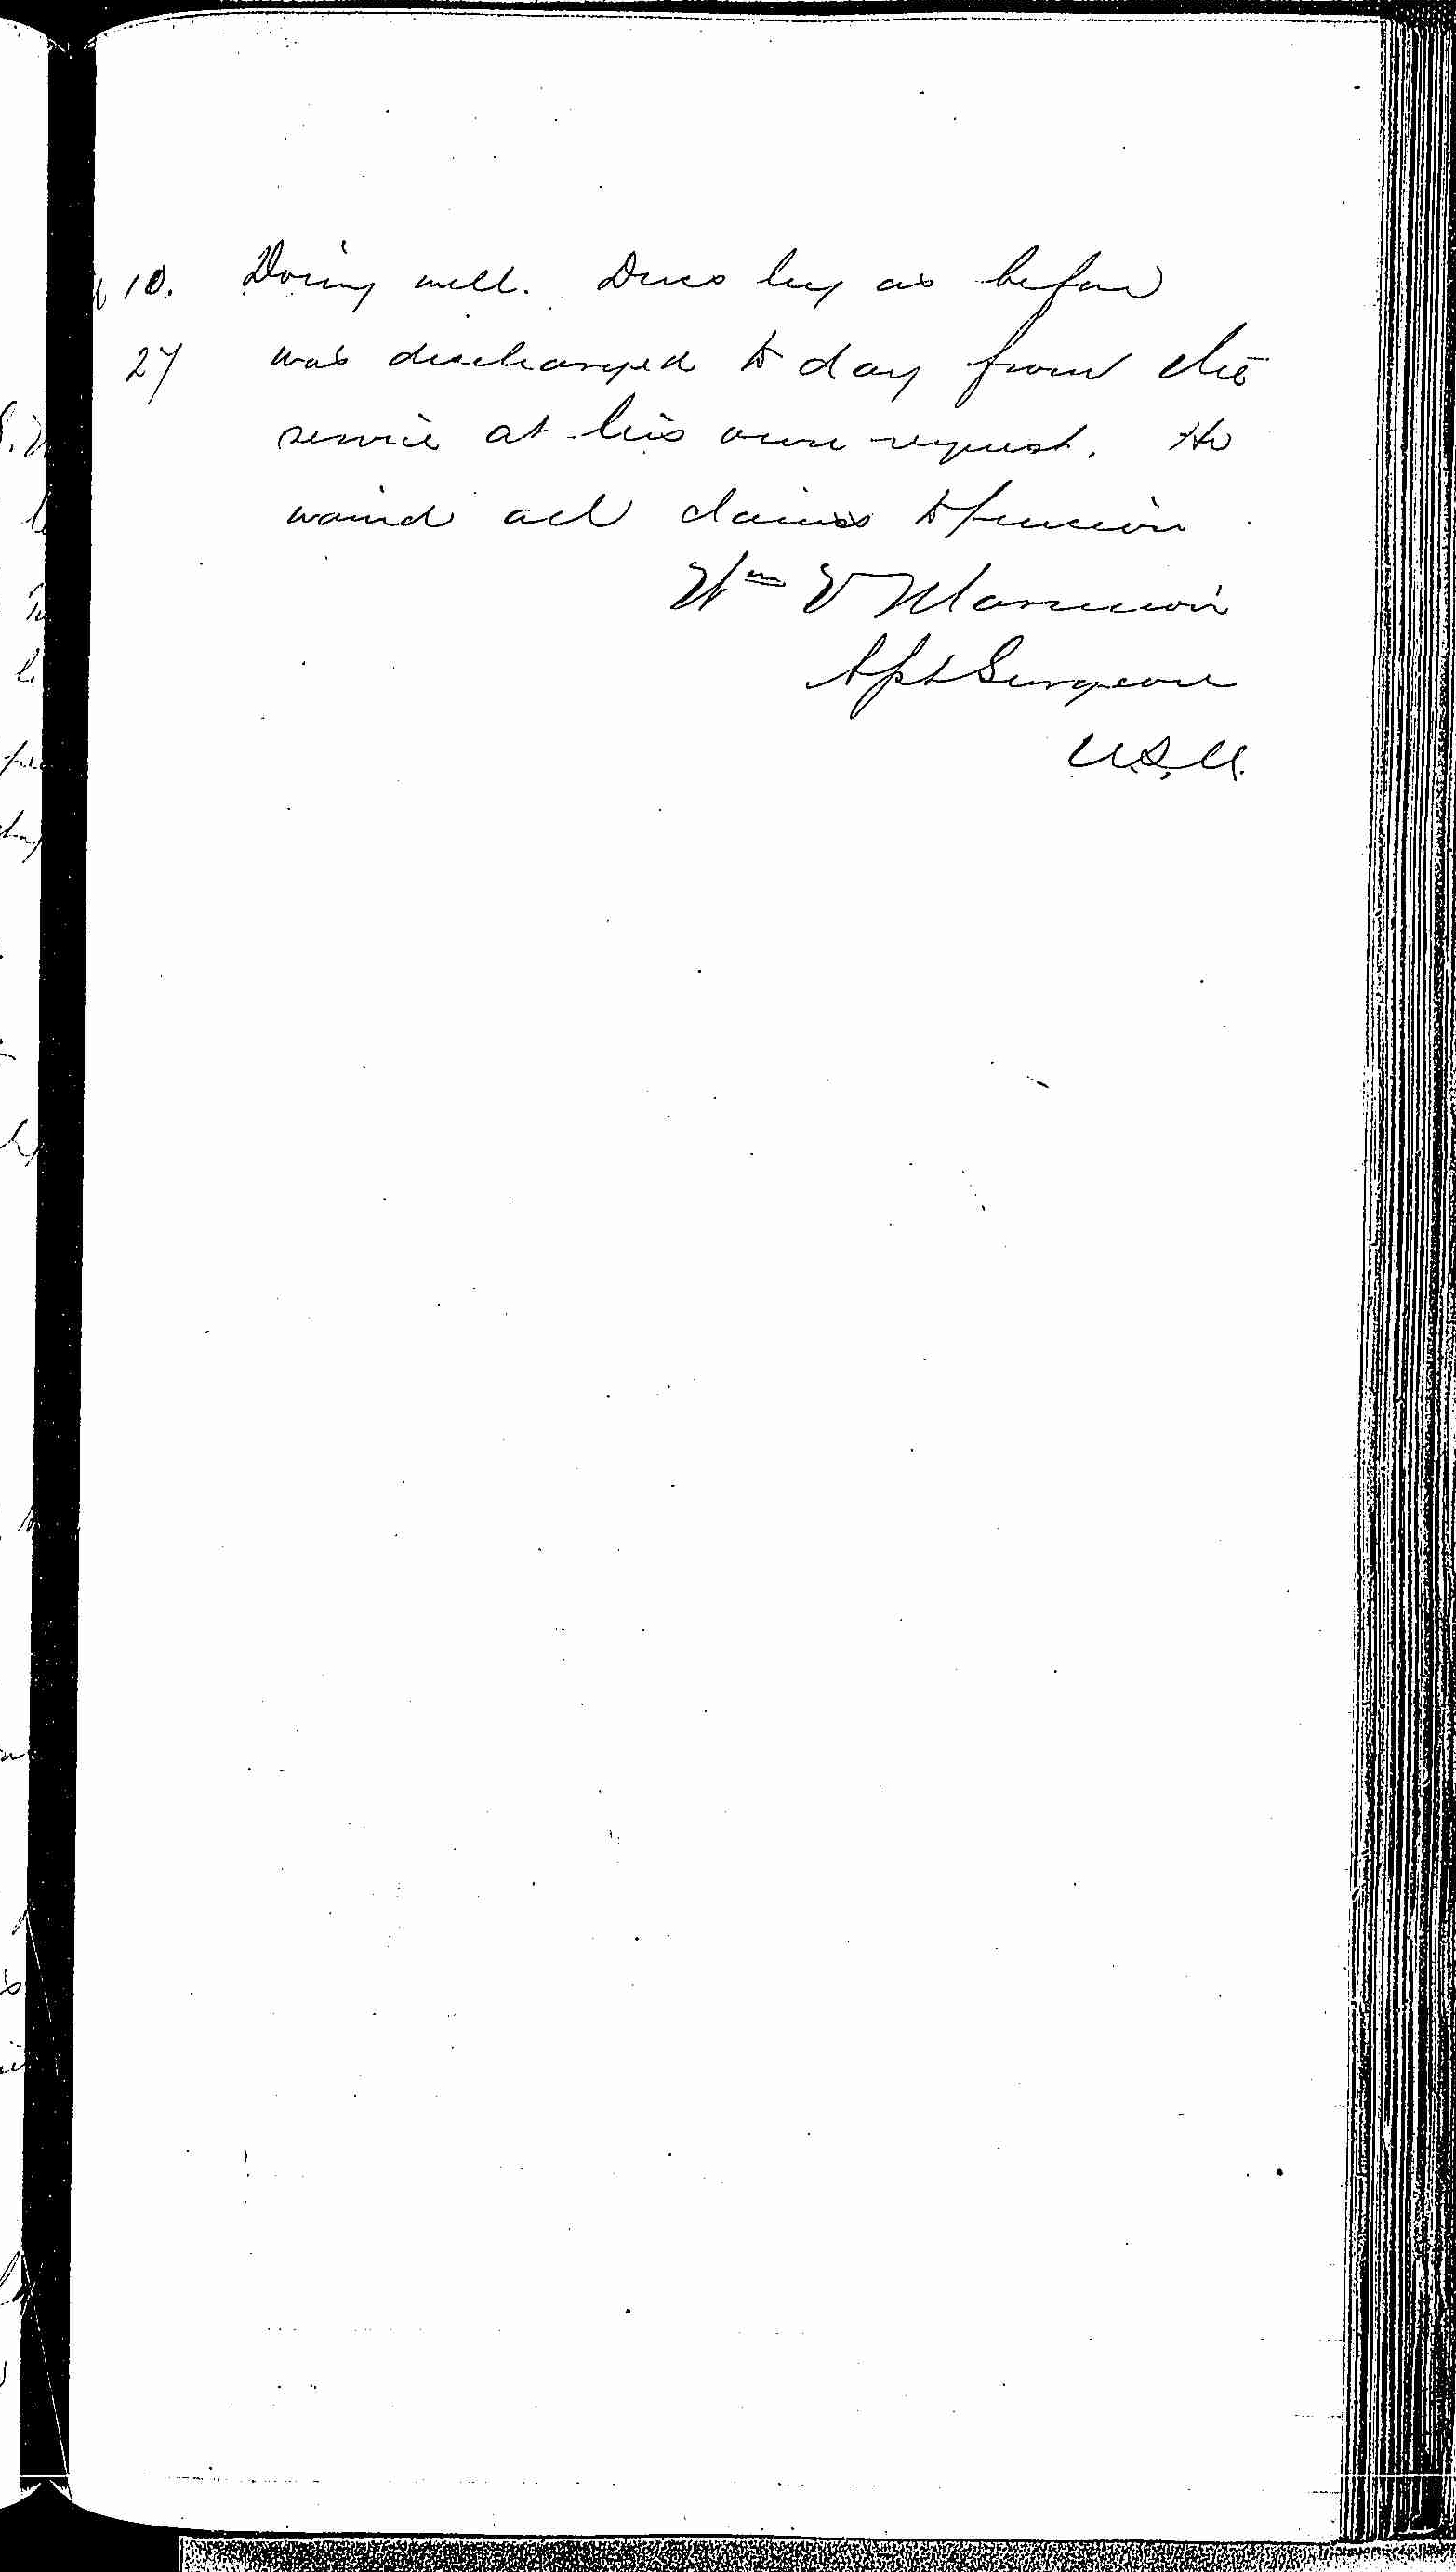 Entry for Joseph Poiler (page 3 of 3) in the log Hospital Tickets and Case Papers - Naval Hospital - Washington, D.C. - 1868-69